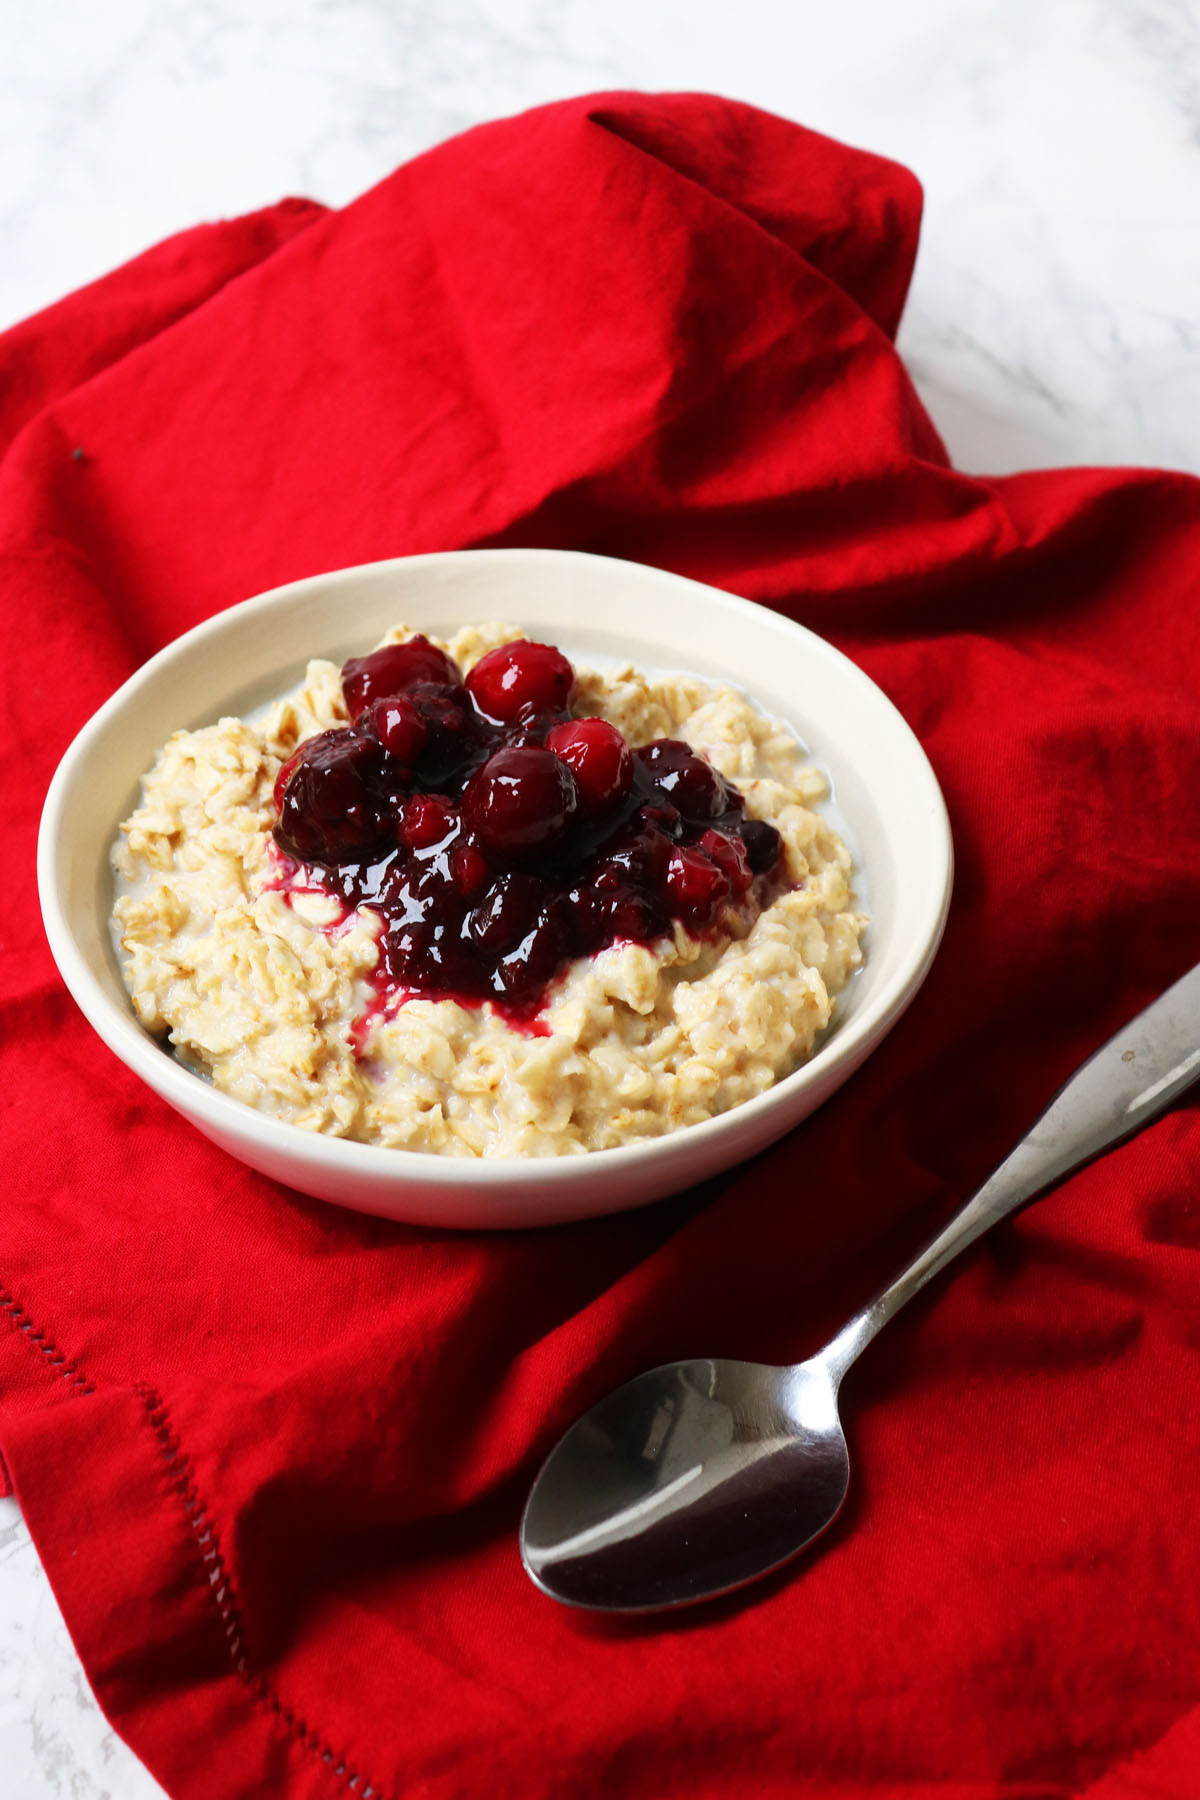 Small bowl of spiced berry porridge